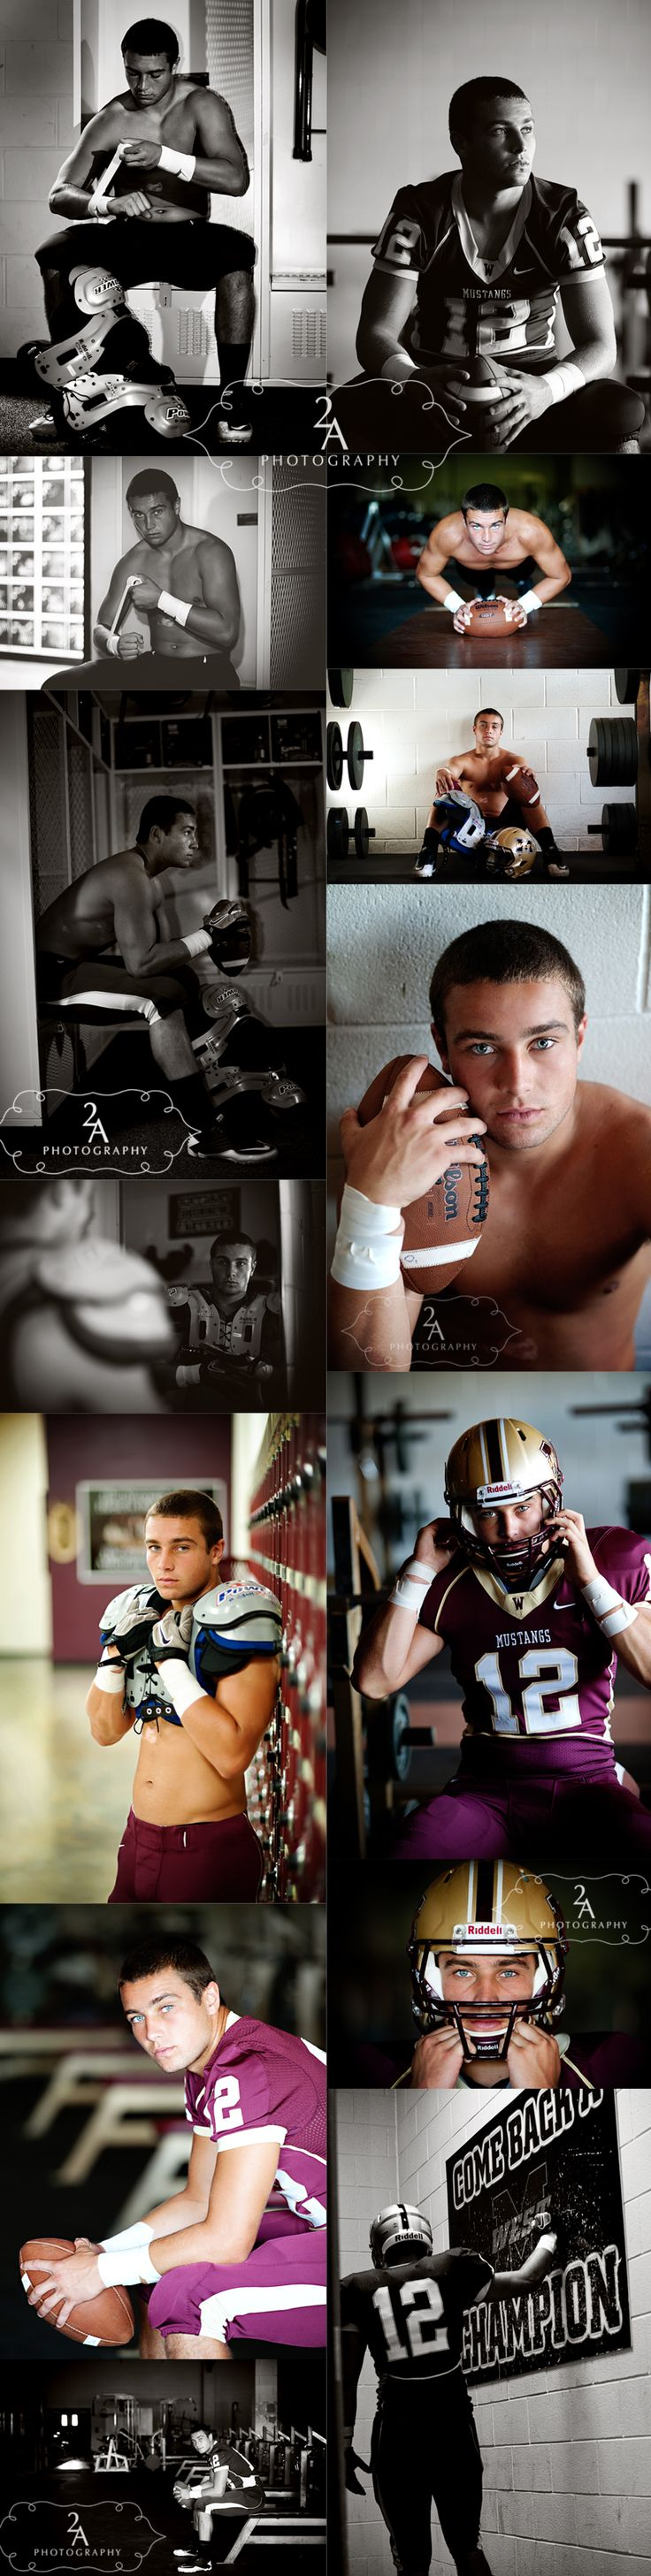 Football Player Senior Photography Session. Love these Senior Sport Images, perfect